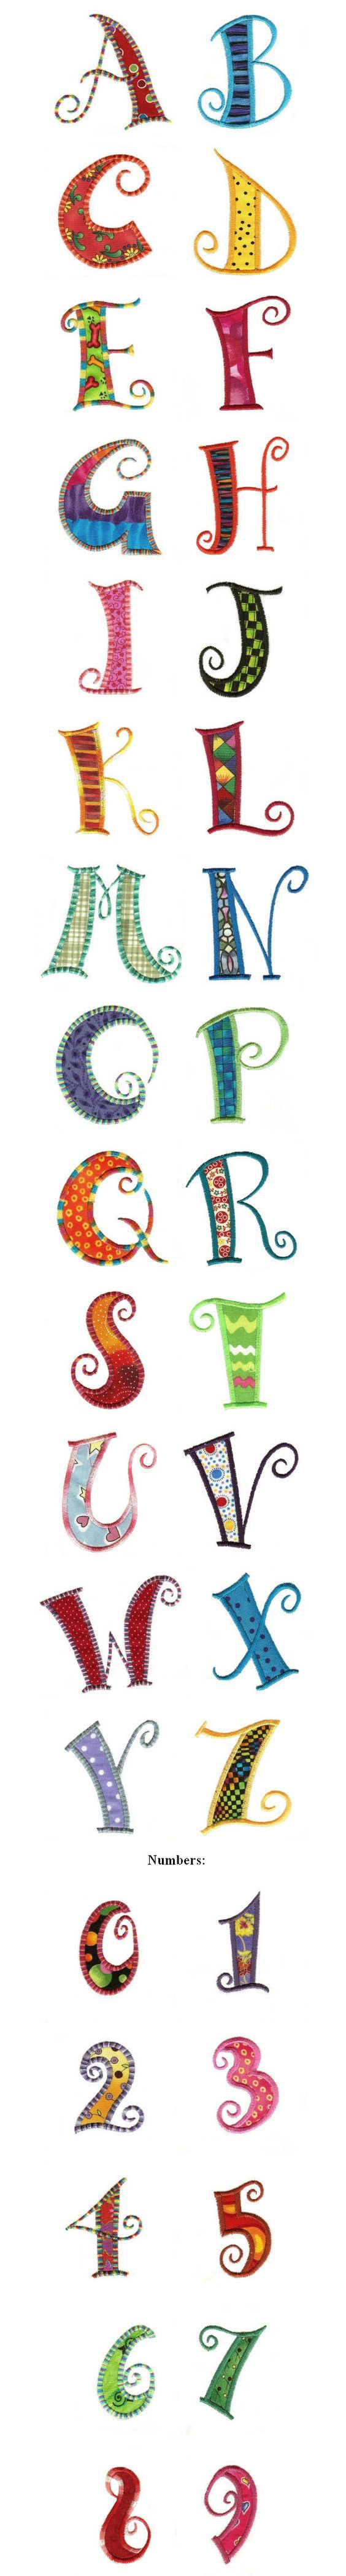 2129 best images about lettering ideas on pinterest for Embroidery prices per letter